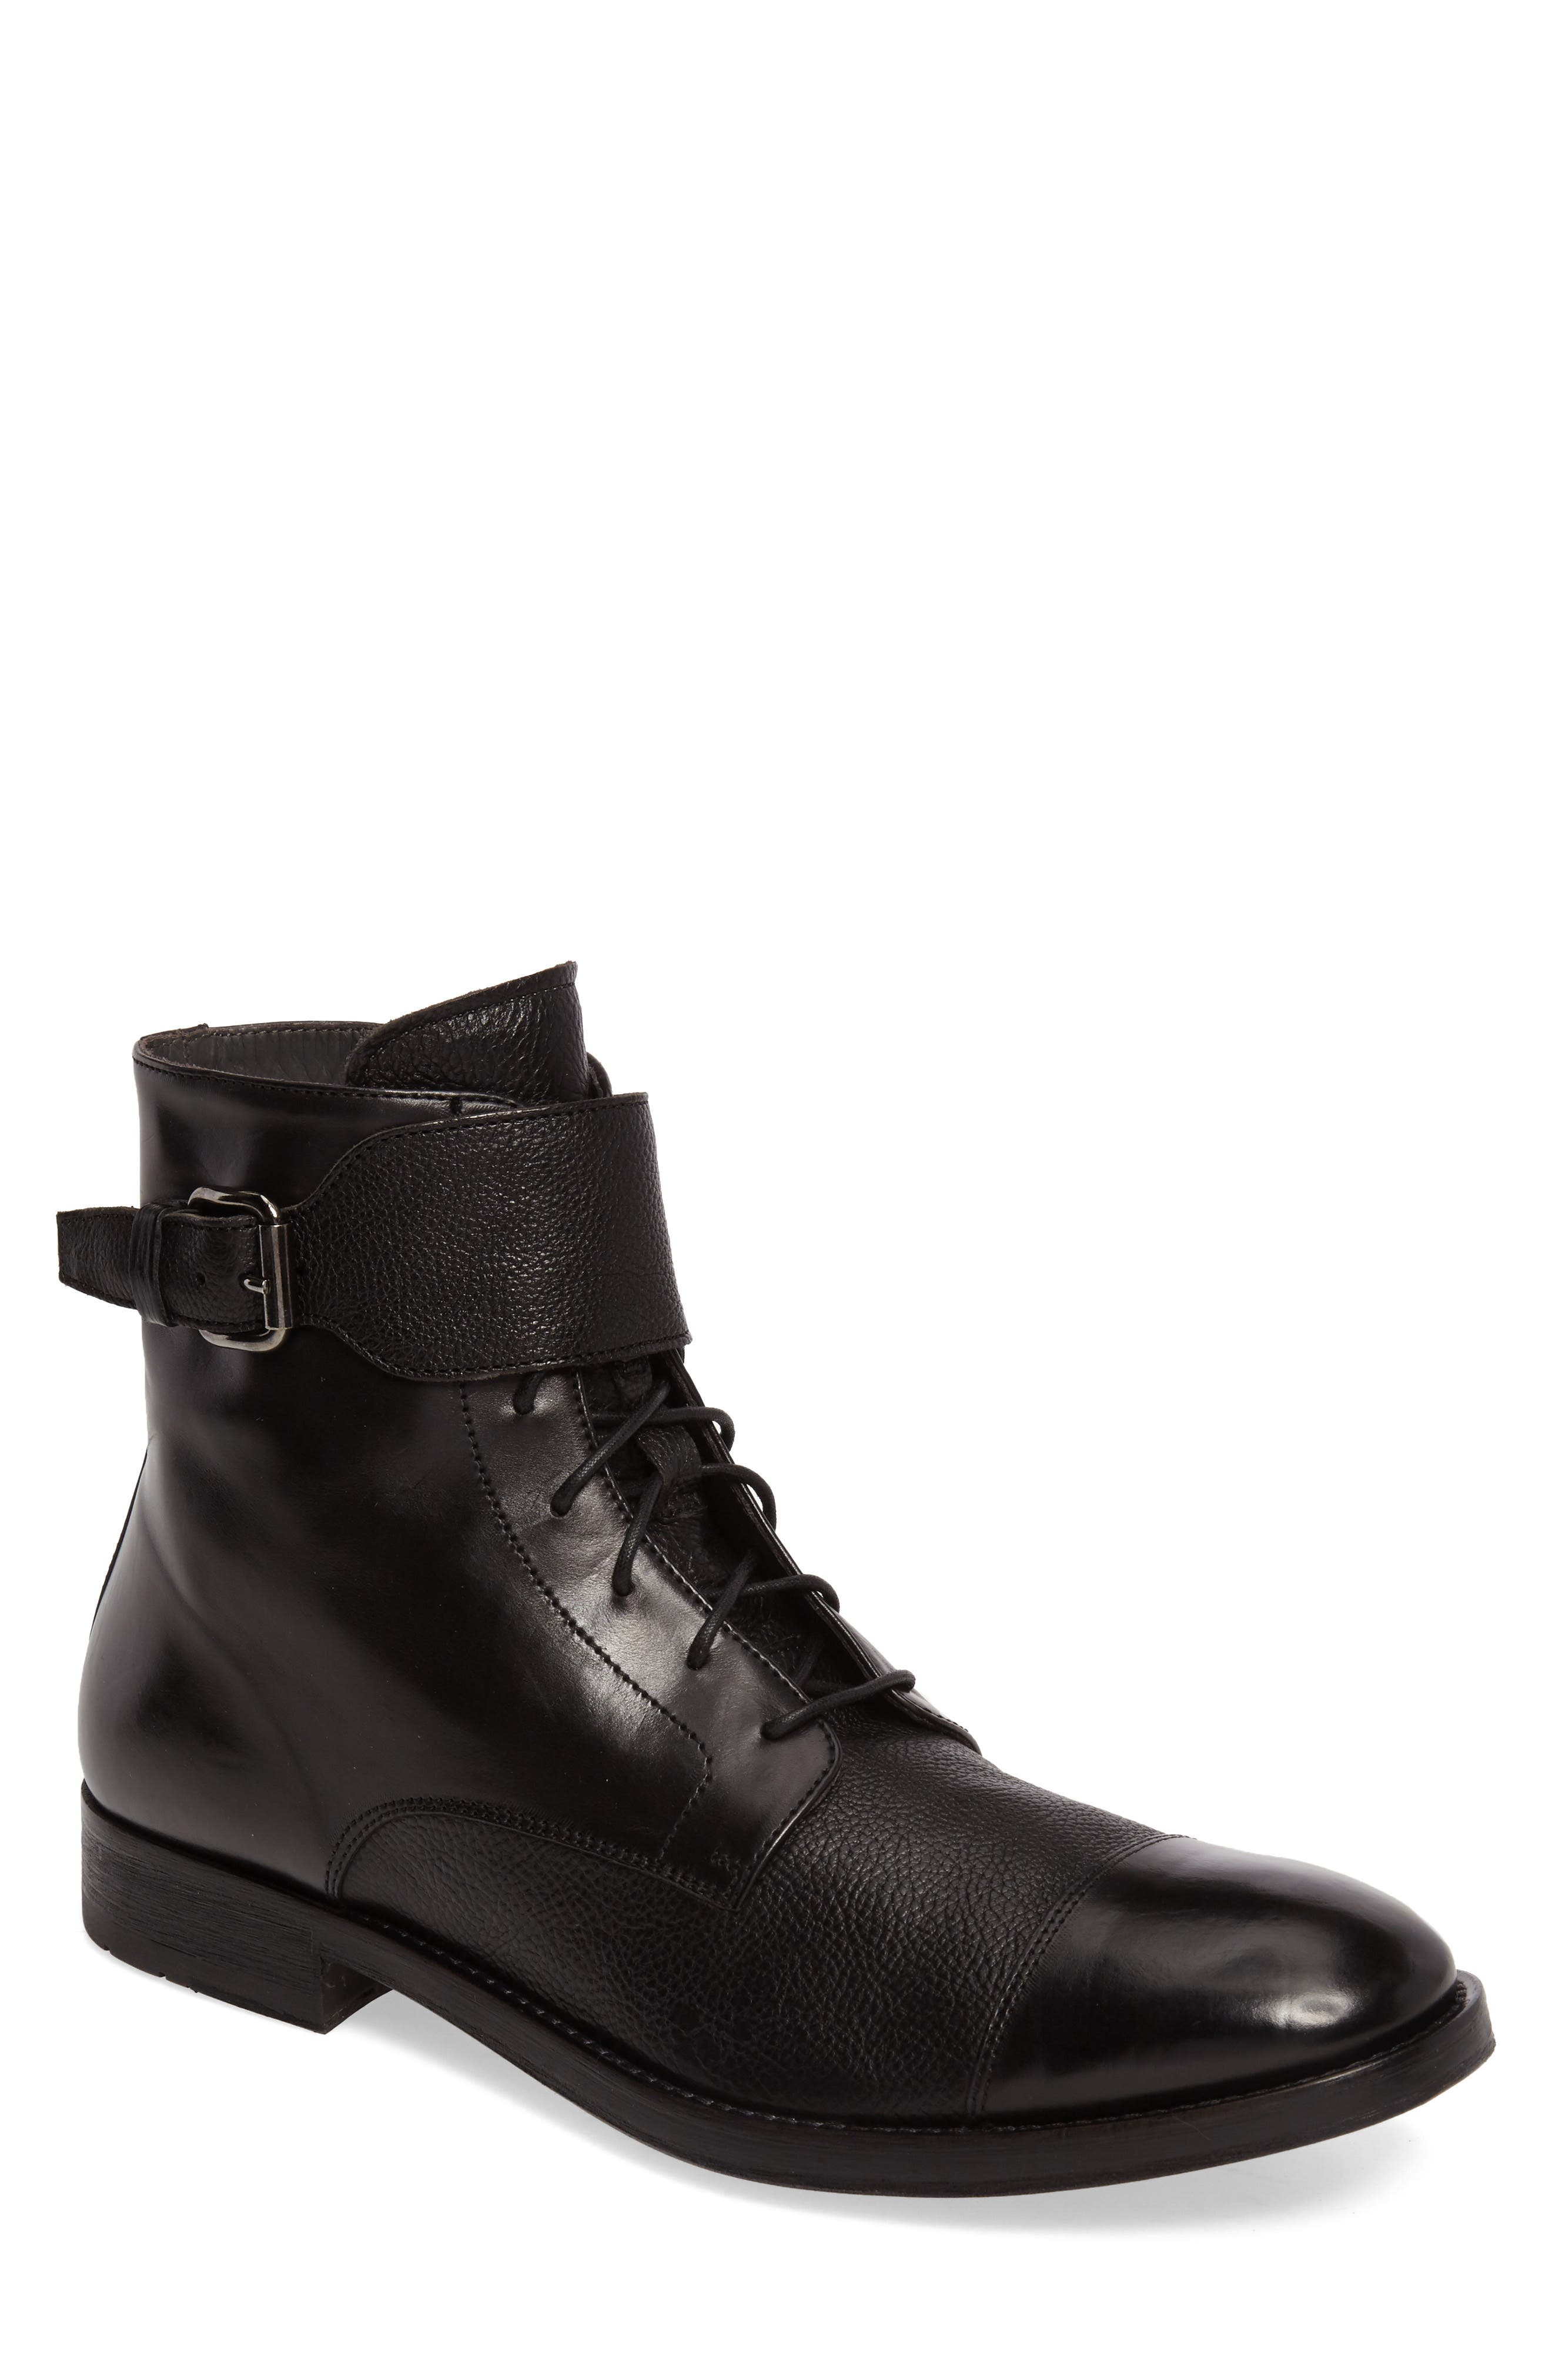 Flyboy Cap Toe Boot,                             Main thumbnail 1, color,                             001